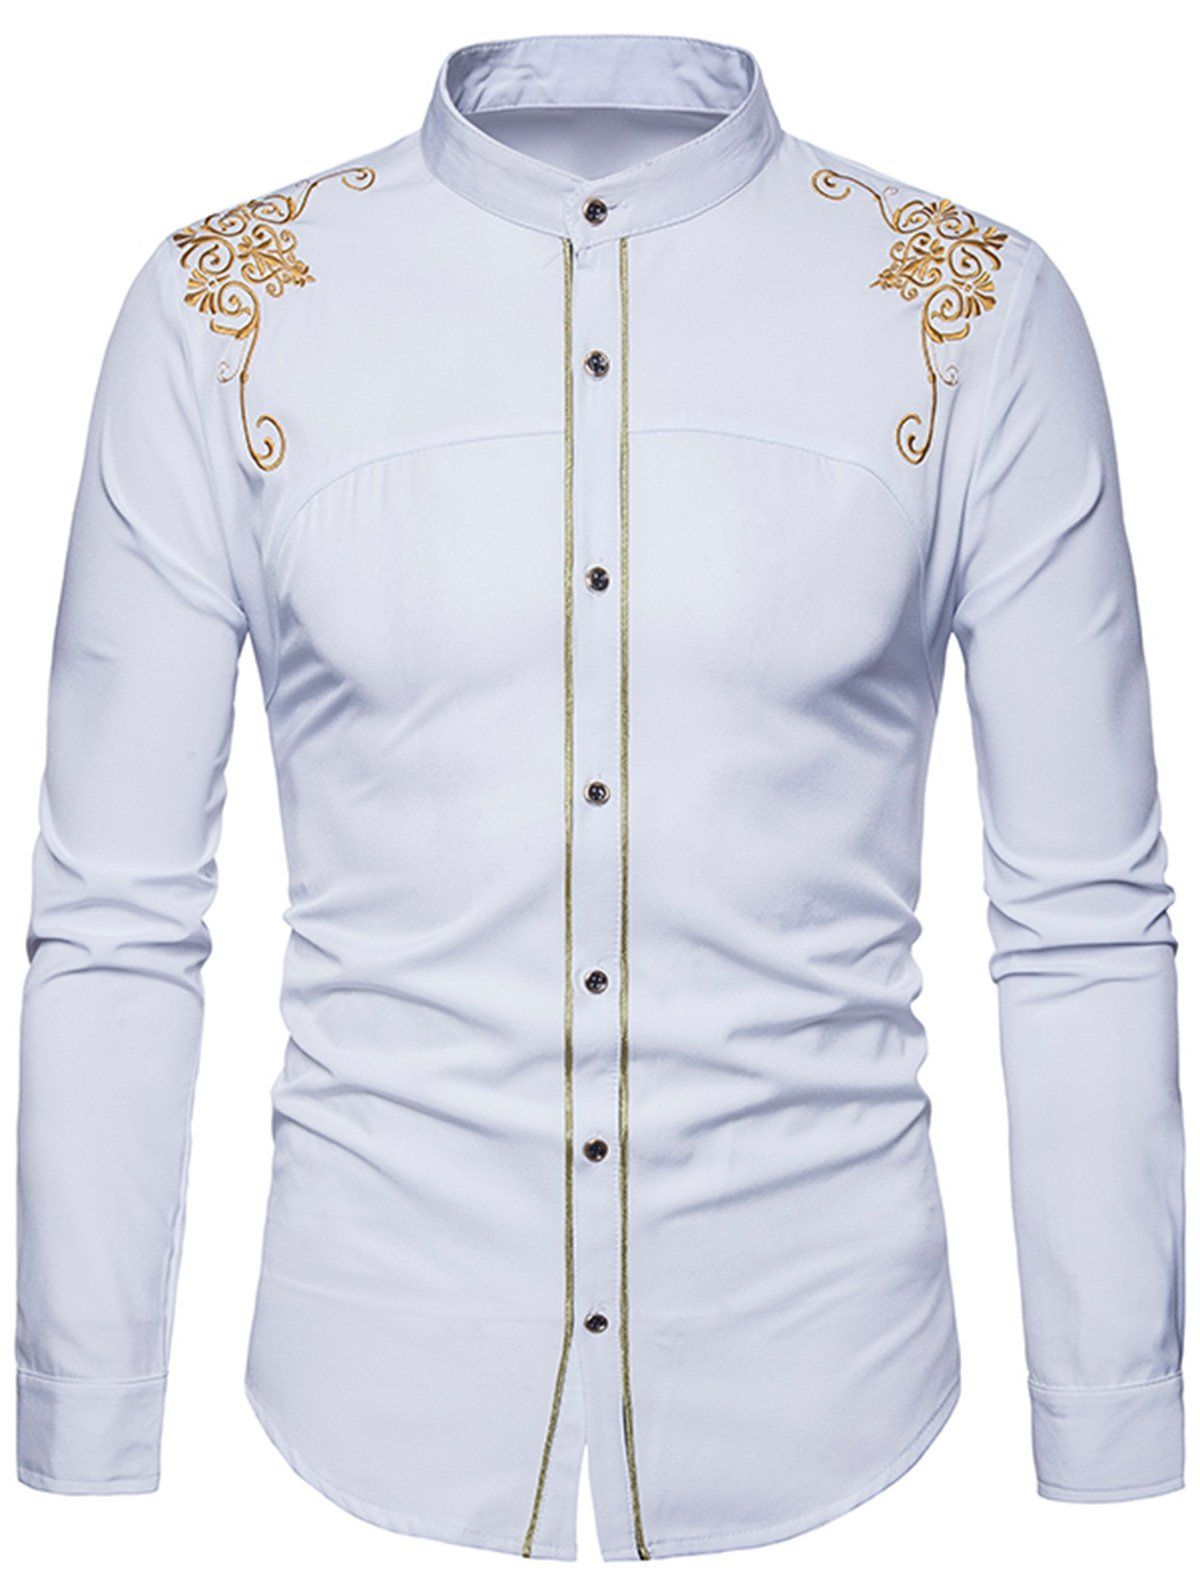 1edc7c5f6 African Attire For Men, Shirt Embroidery, Cheap Shirts, Long Sleeve Shirts,  African